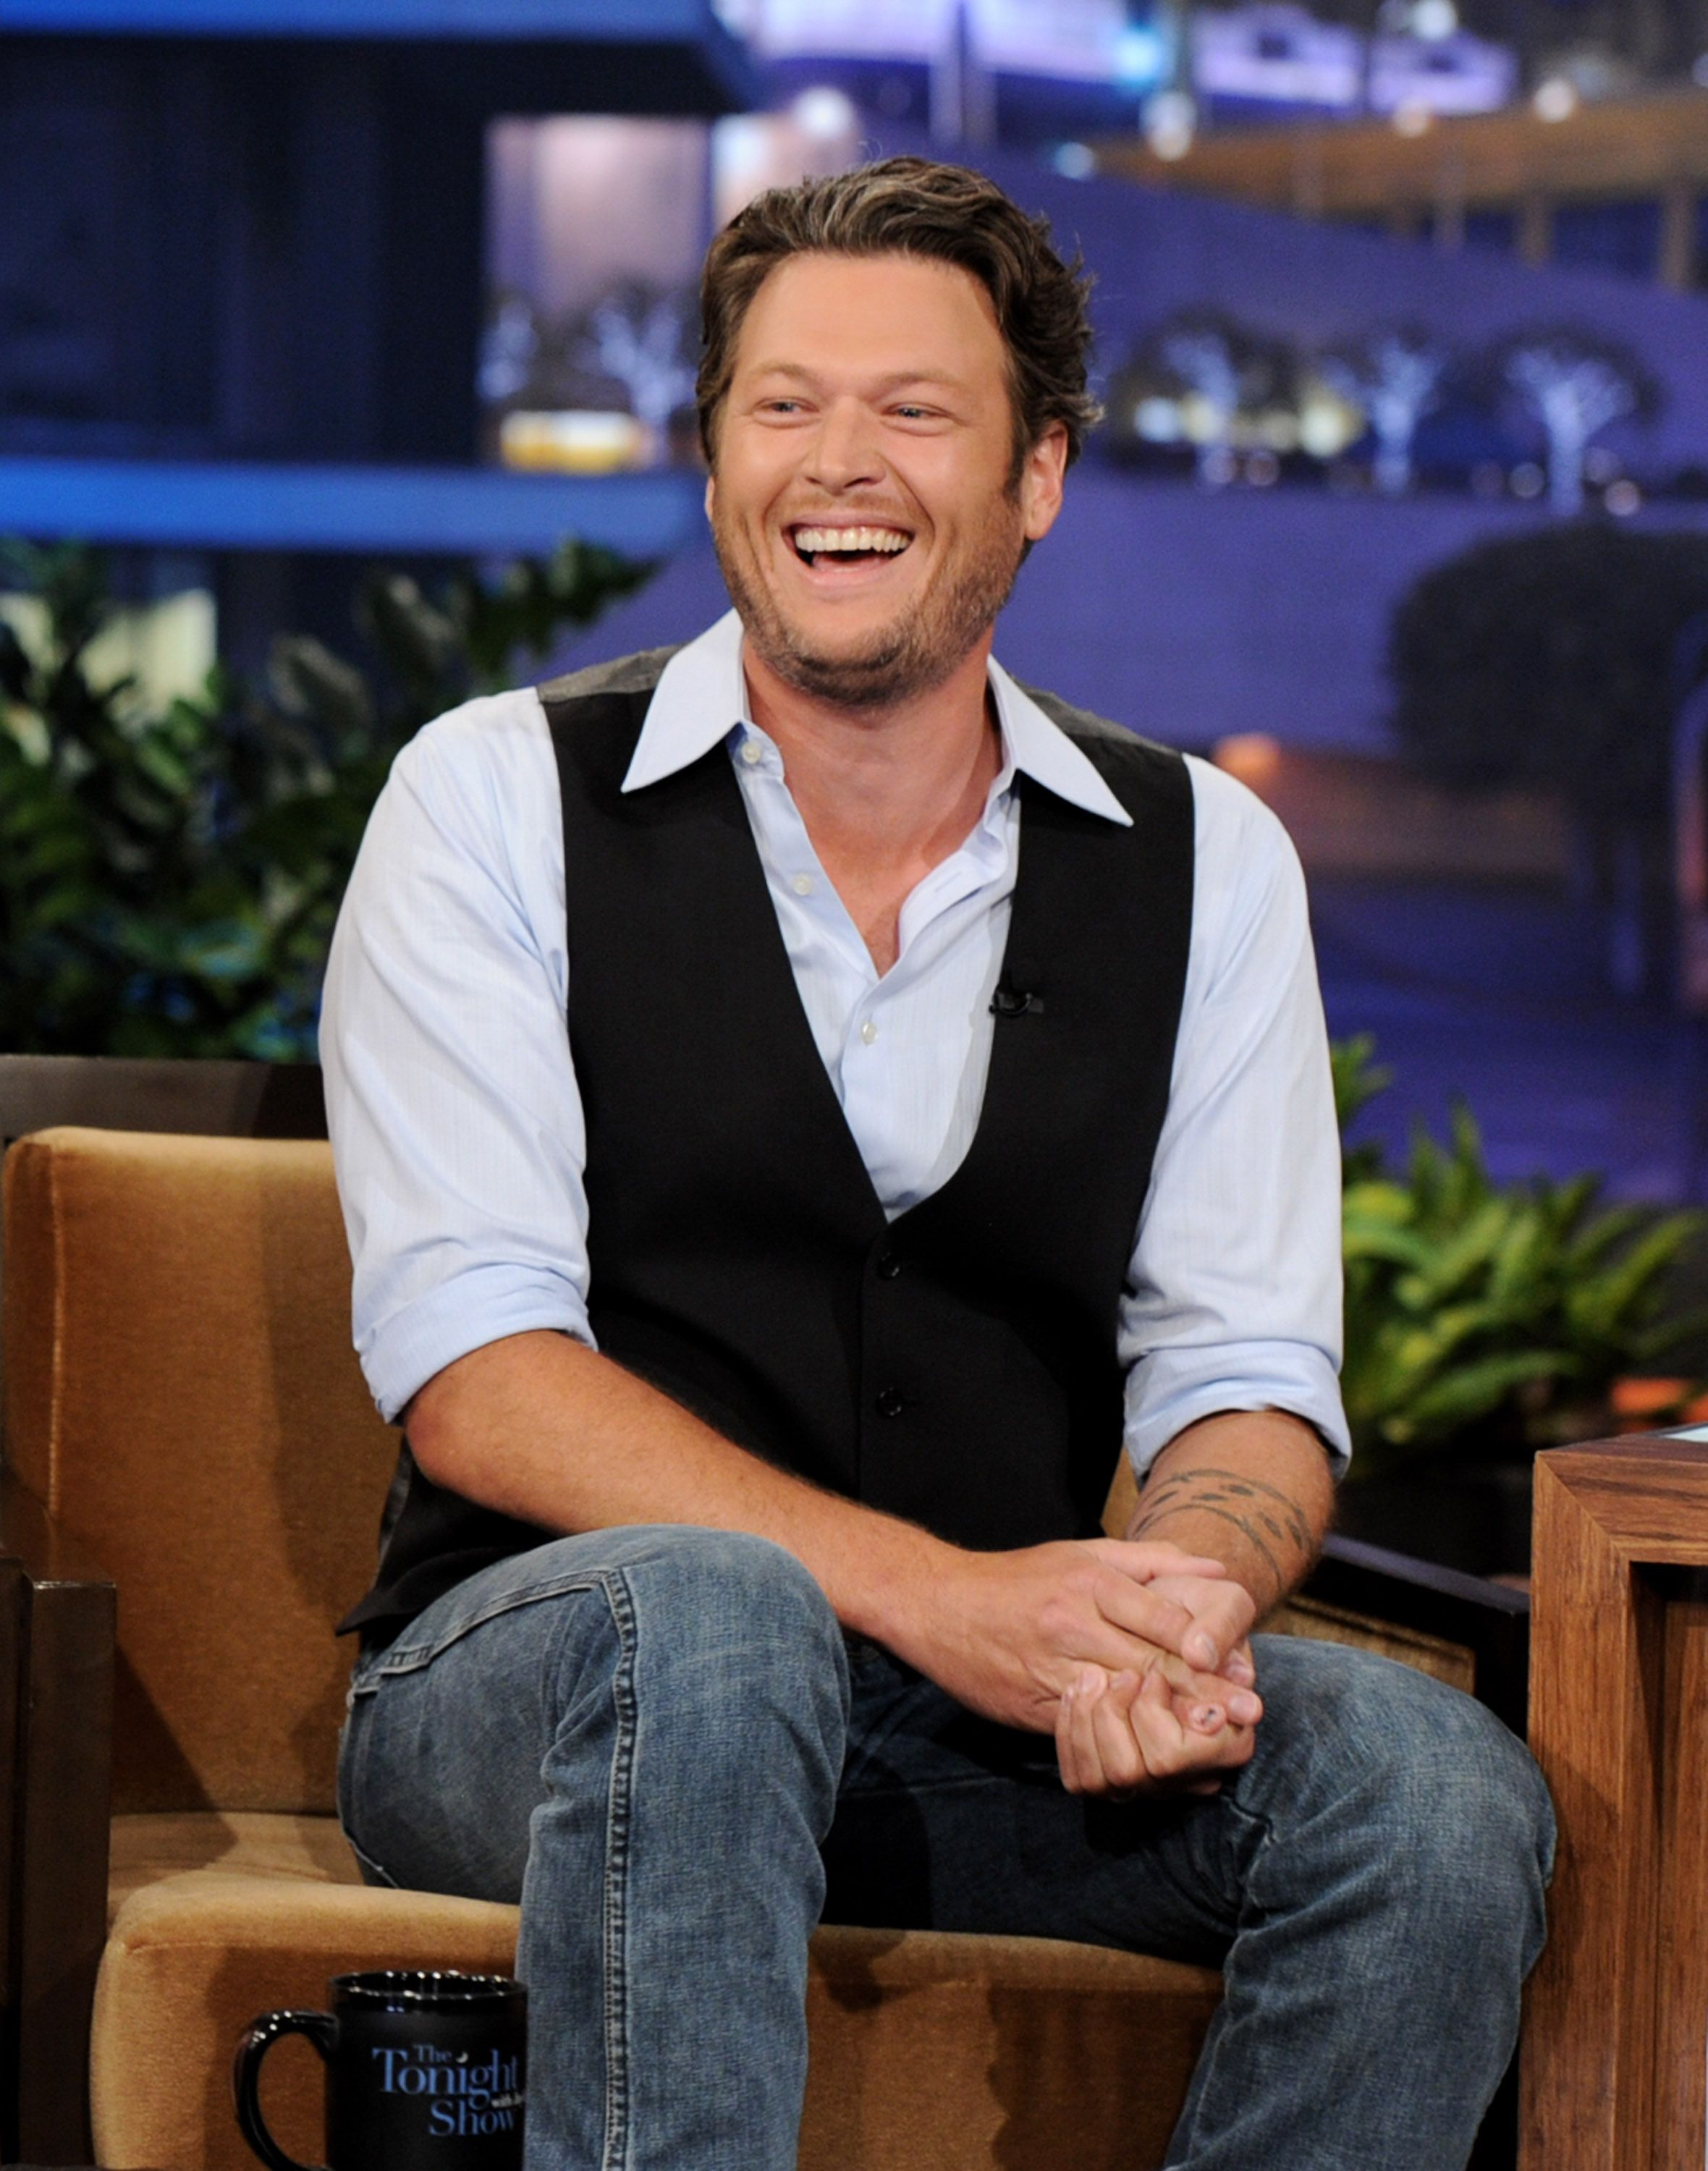 """Blake Shelton appears on the """"Tonight Show with Jay Leno"""" at NBC Studios on June 15, 2011, in Burbank, California   Photo: Kevin Winter/Tonight Show/Getty Images"""